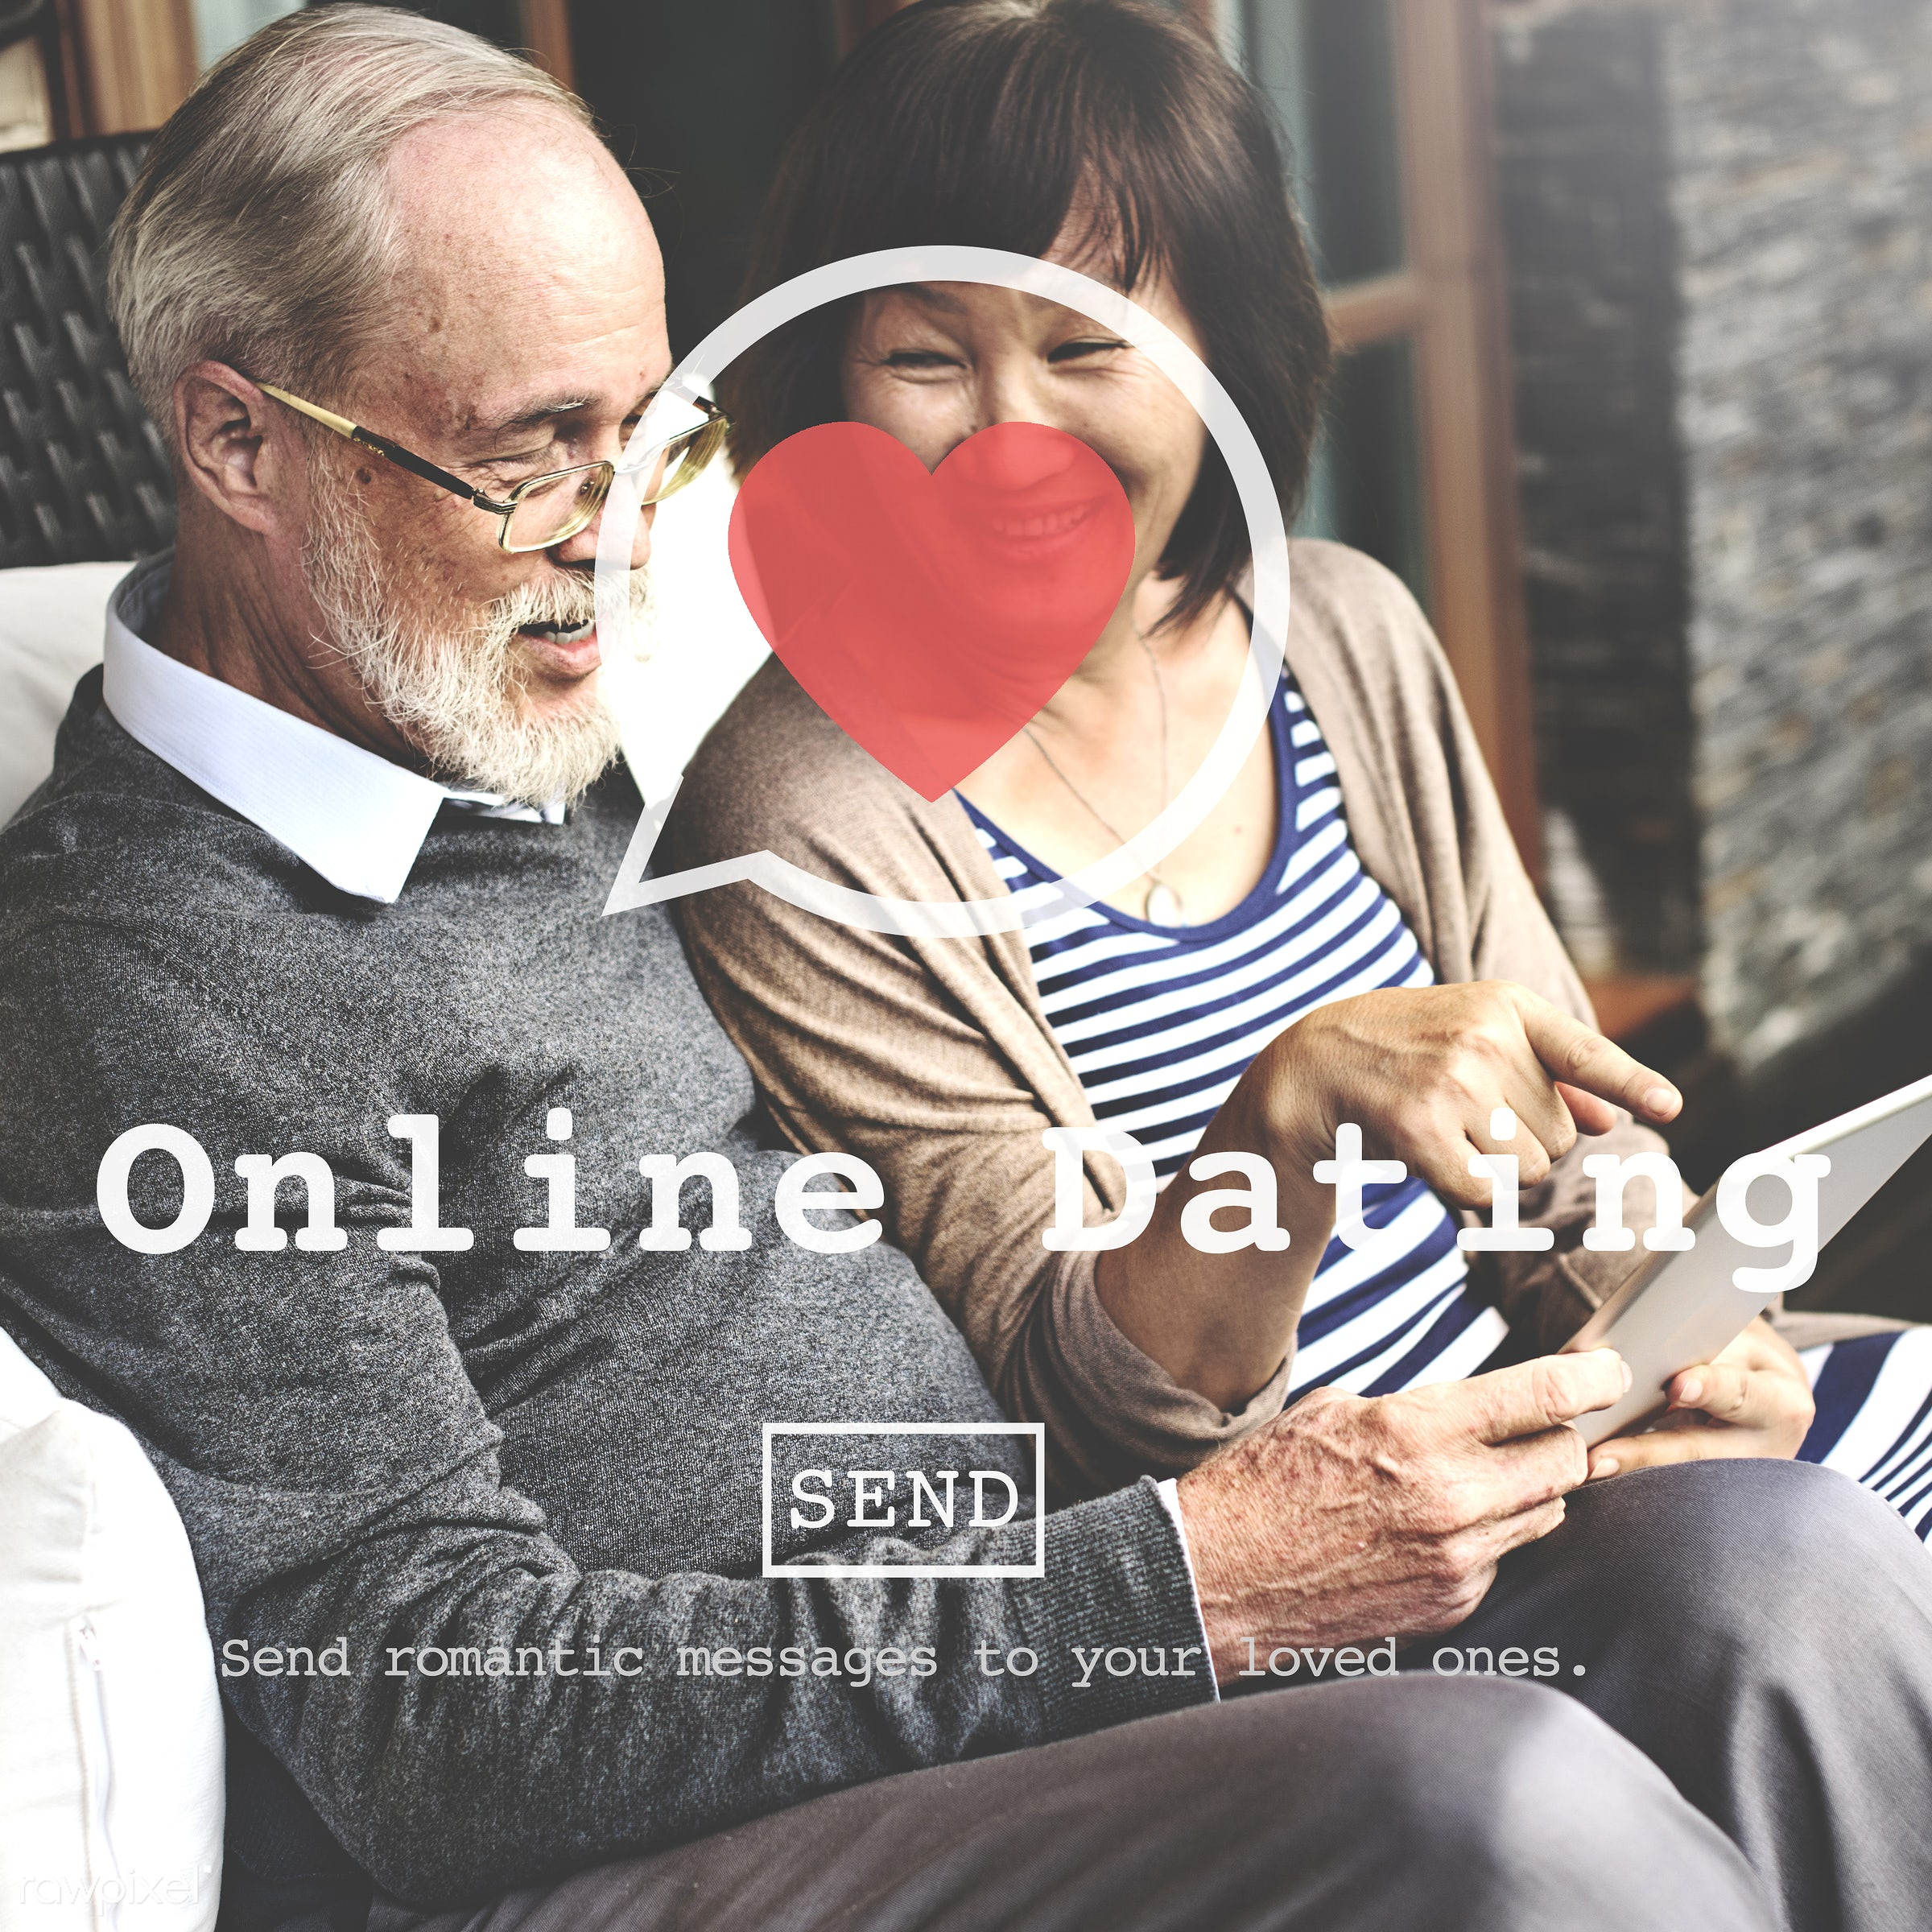 wireless technology, asian ethnicity, bonding, browsing, communication, connect, court, dating, digital, digital tablet,...